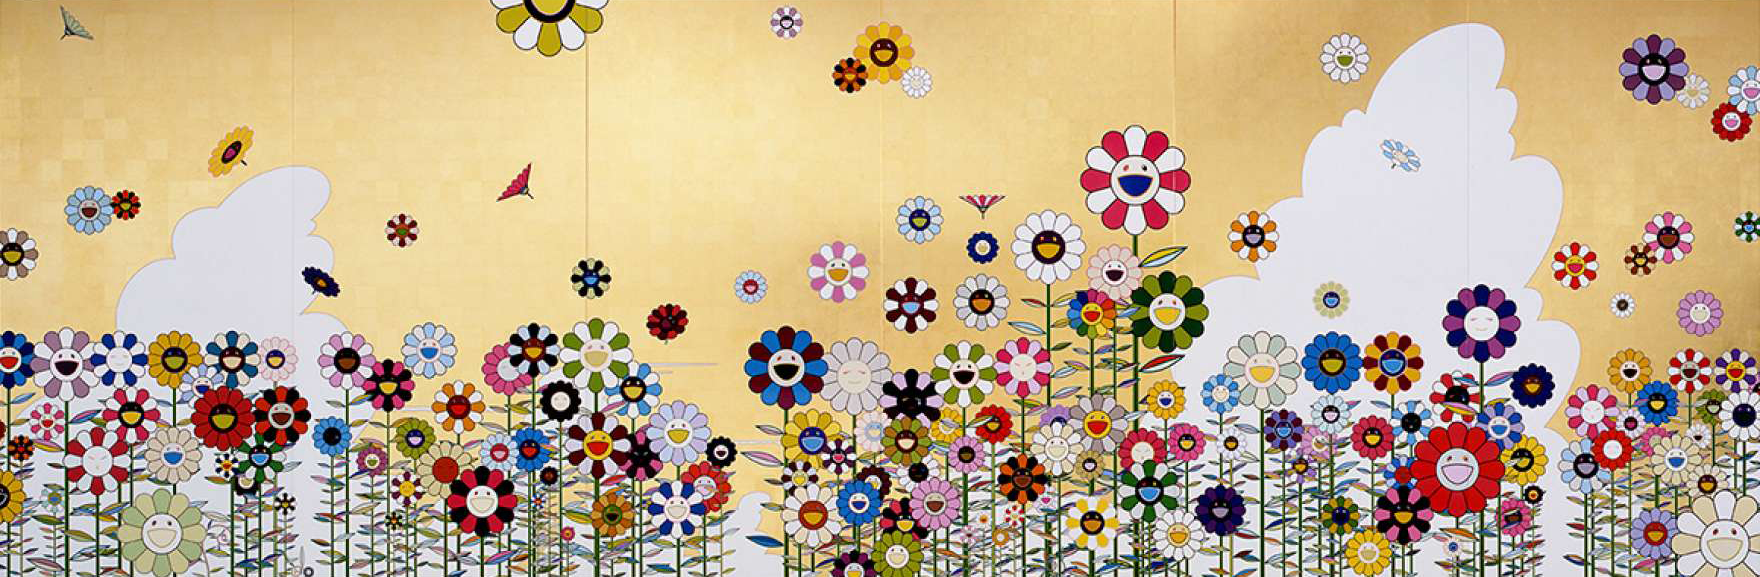 TAKASHI MURAKAMI, KAWAII - VACANCES (SUMMER VACATION IN THE KINGDOM OF THE GOLDEN), 2008